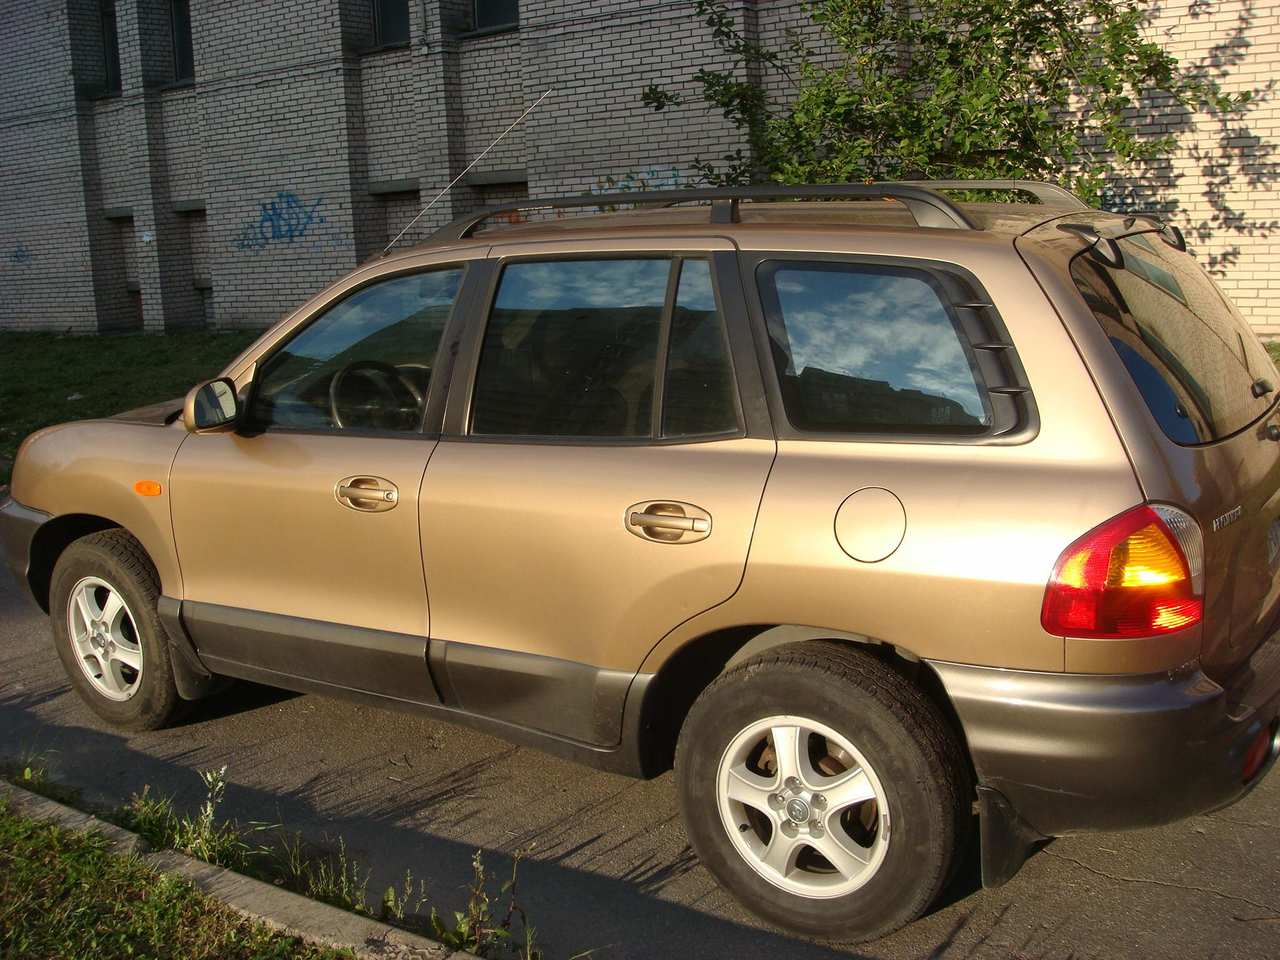 2003 hyundai santa fe pictures gasoline automatic for sale. Black Bedroom Furniture Sets. Home Design Ideas